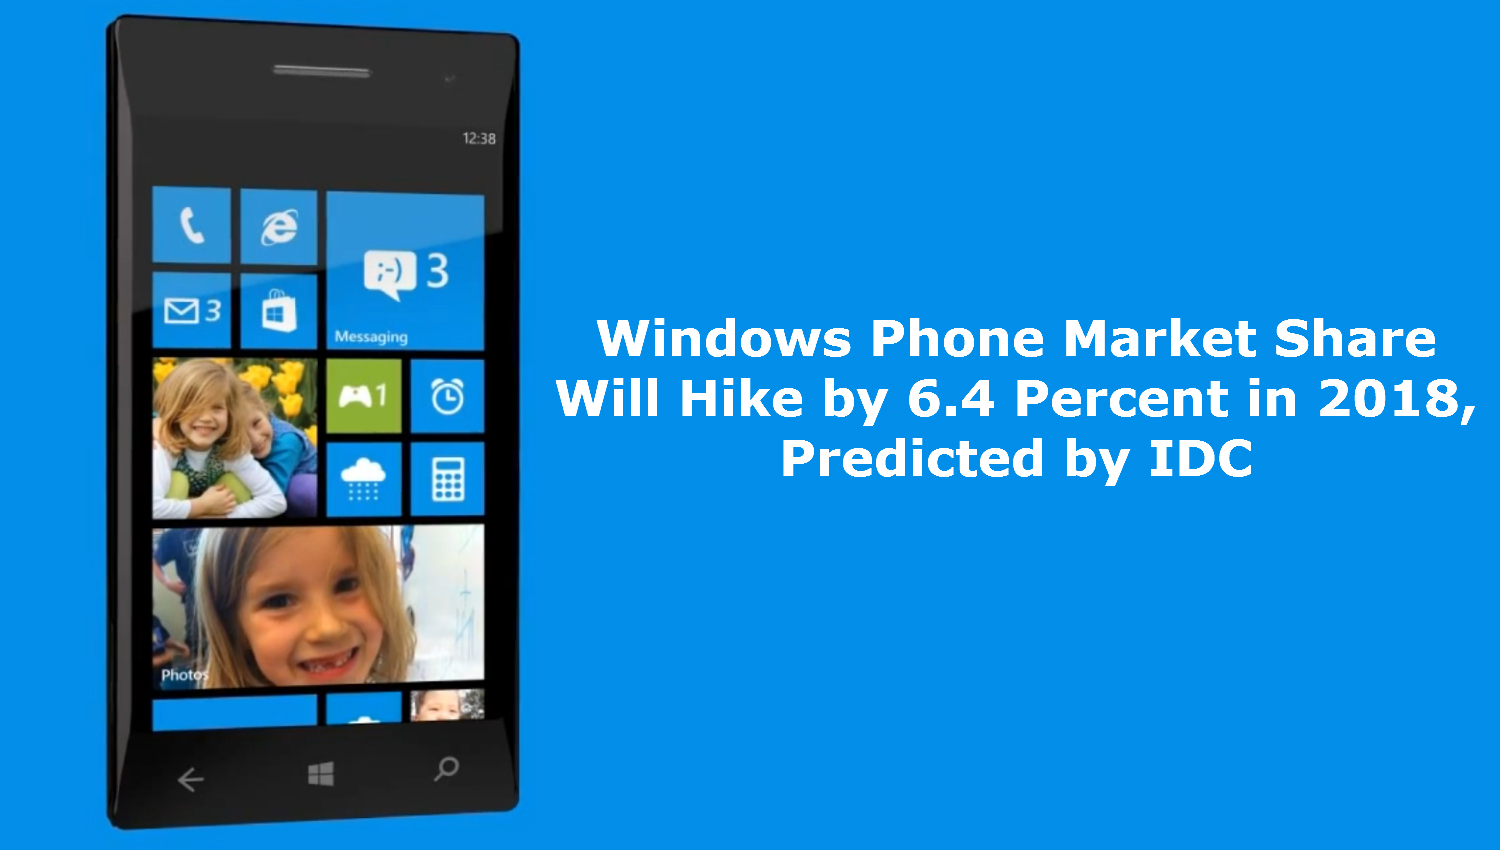 windows-phone-market-share-will-hike-by-6-4-percent-in-2018-predicted-by-idc